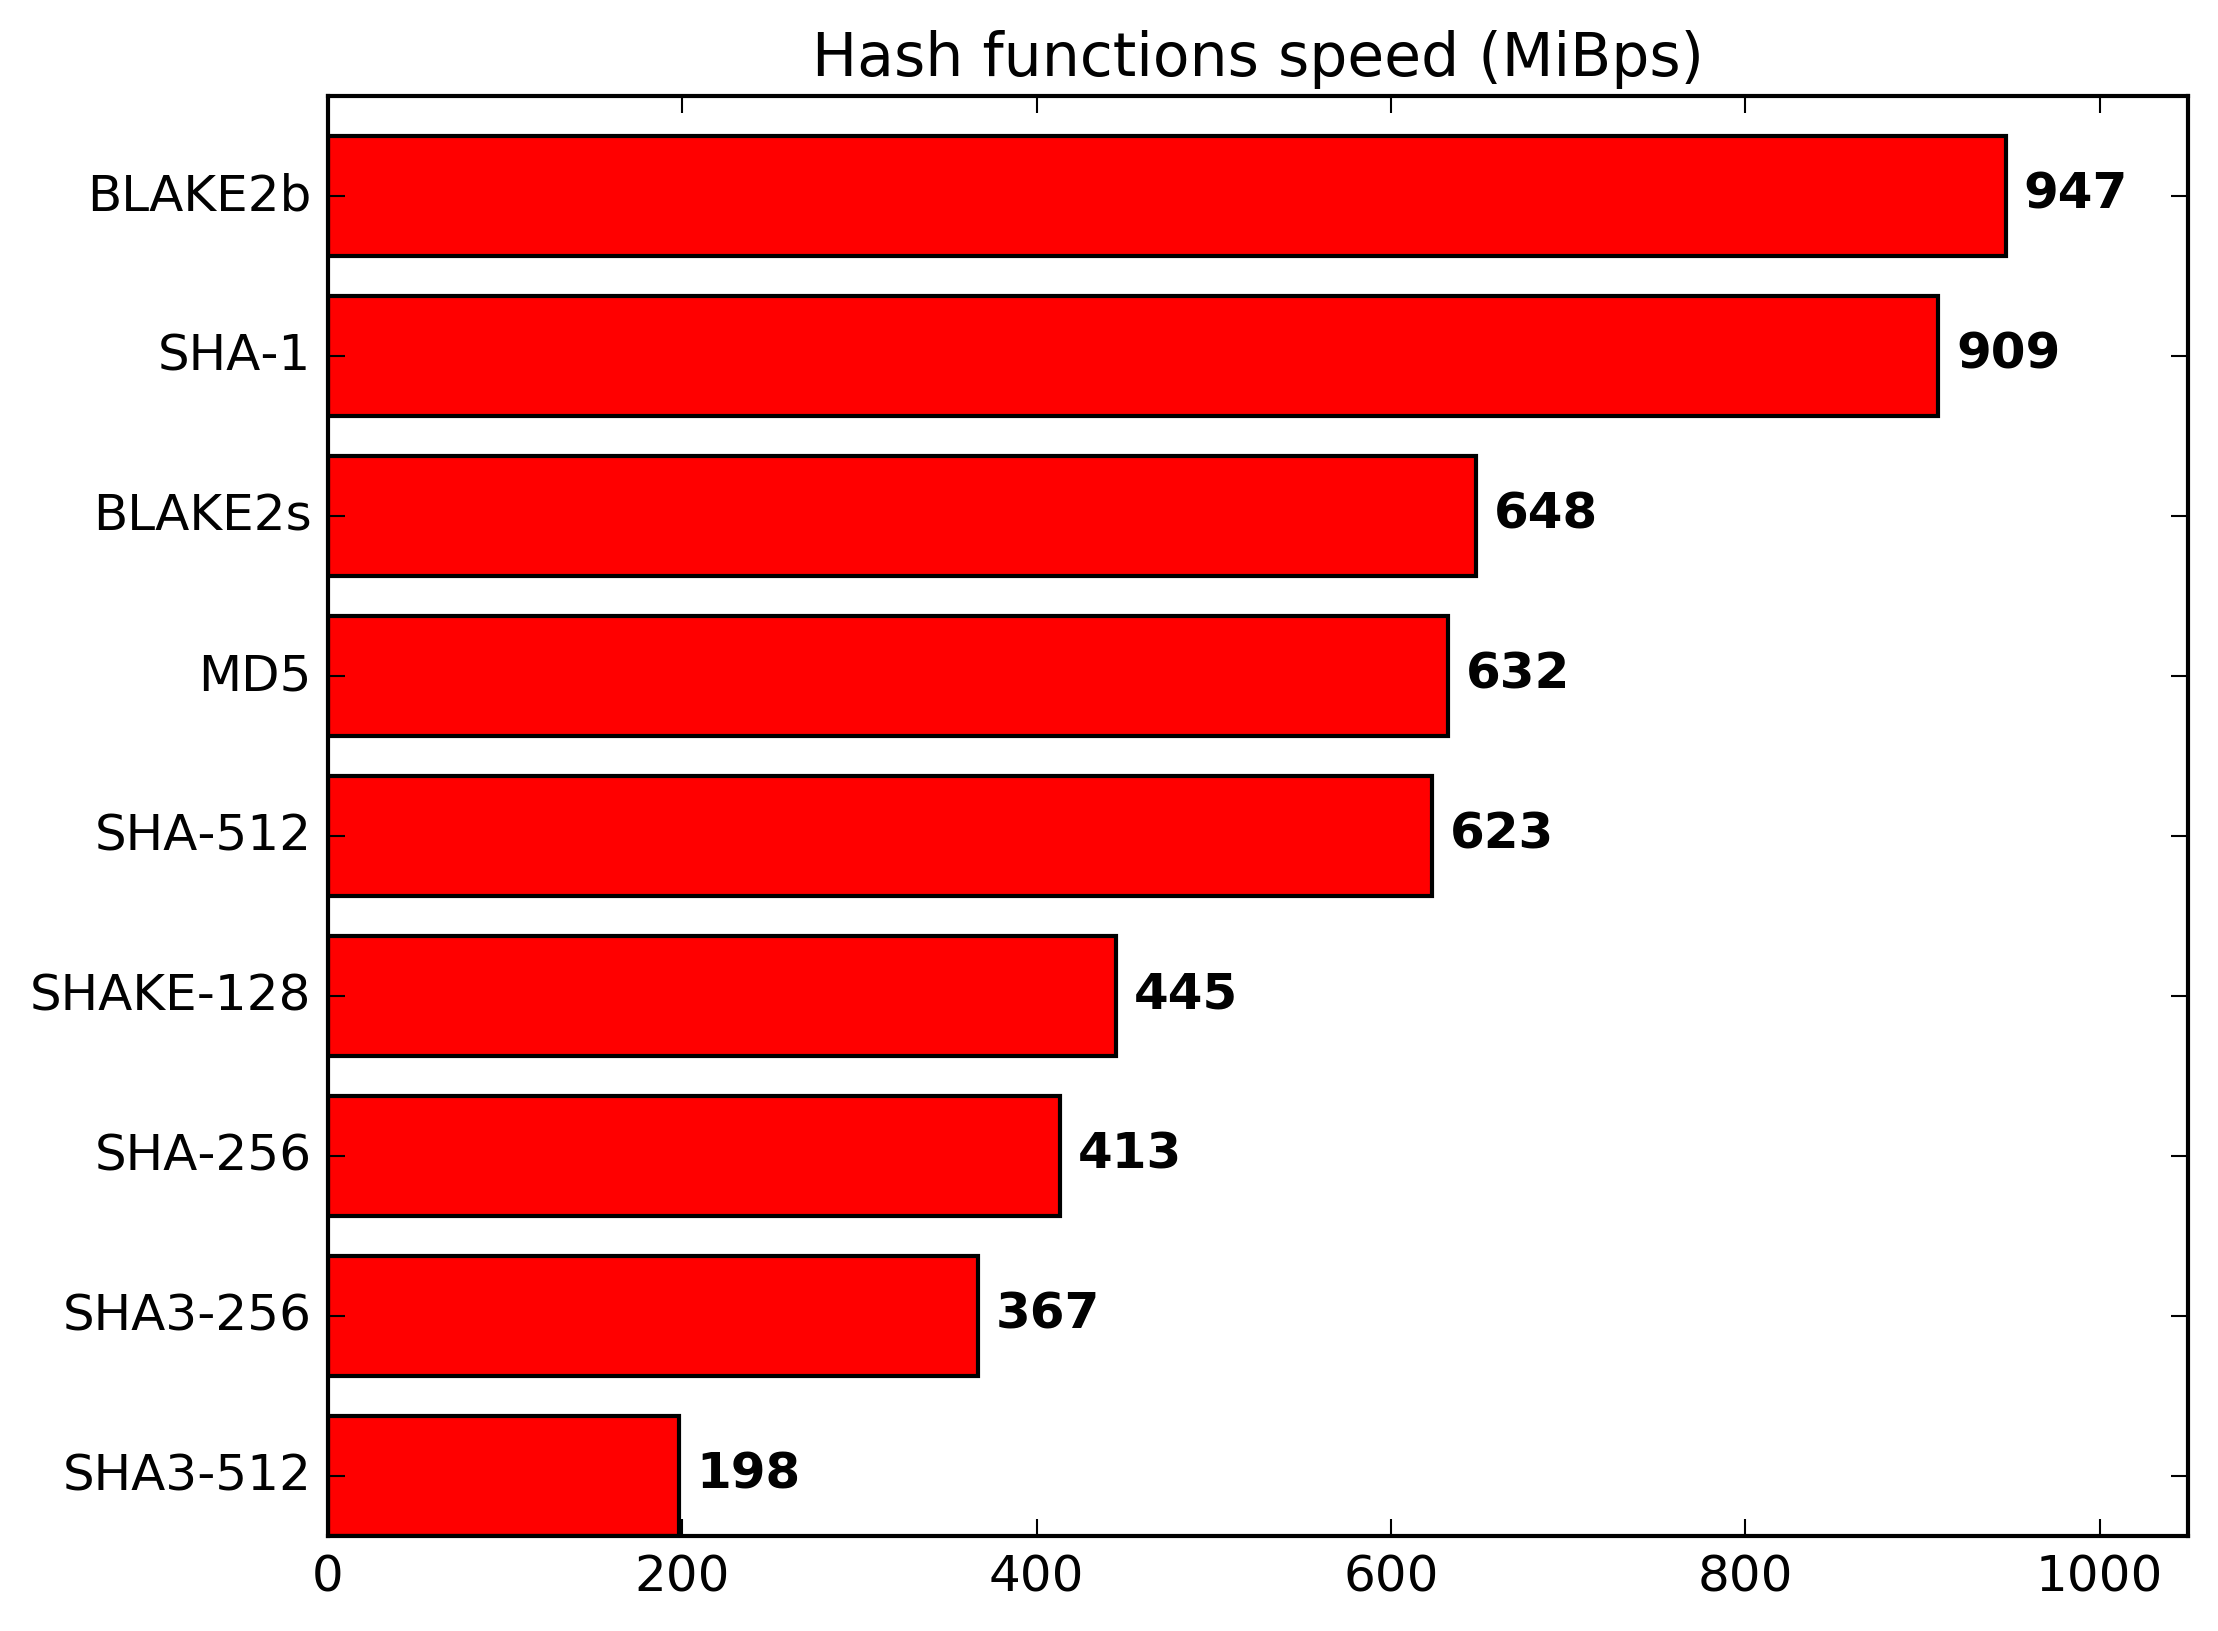 BLAKE2b Benchmarks from BLAKE2.net